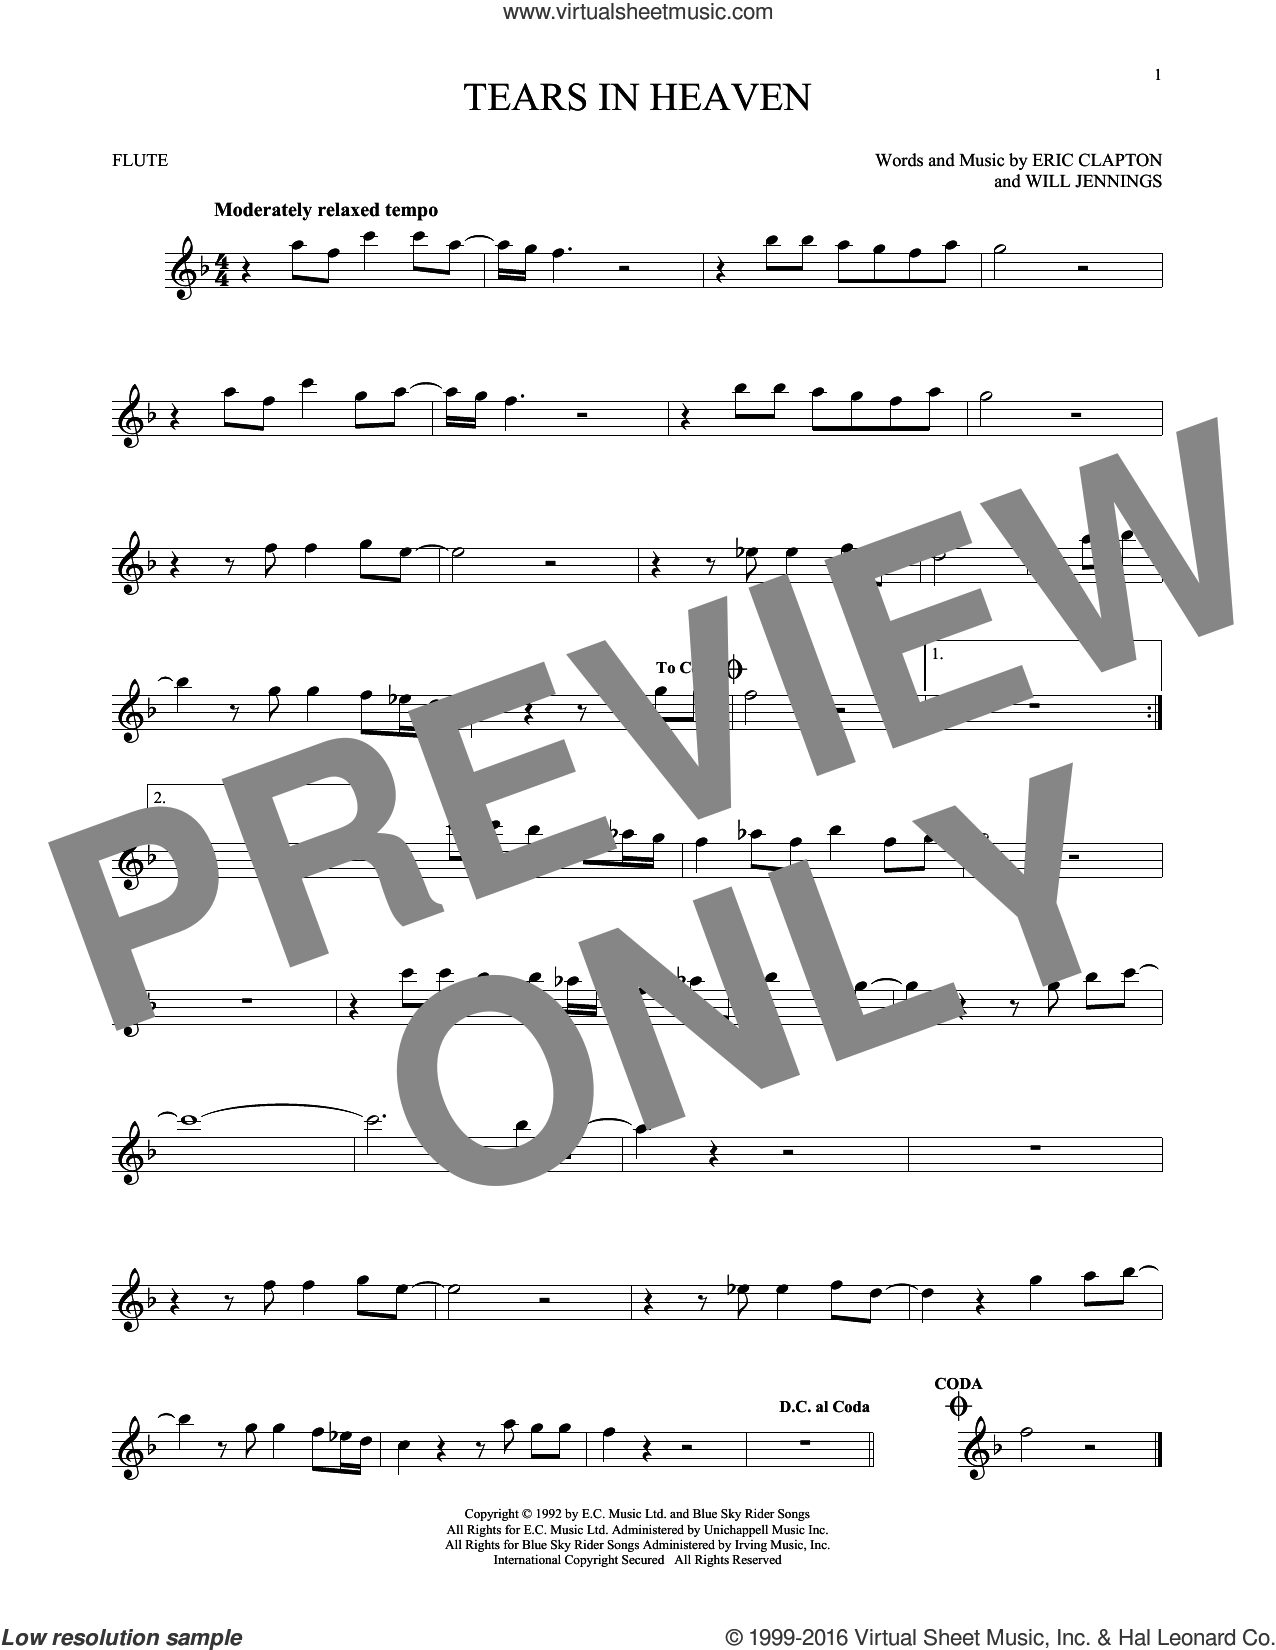 Tears In Heaven sheet music for flute solo by Will Jennings and Eric Clapton. Score Image Preview.